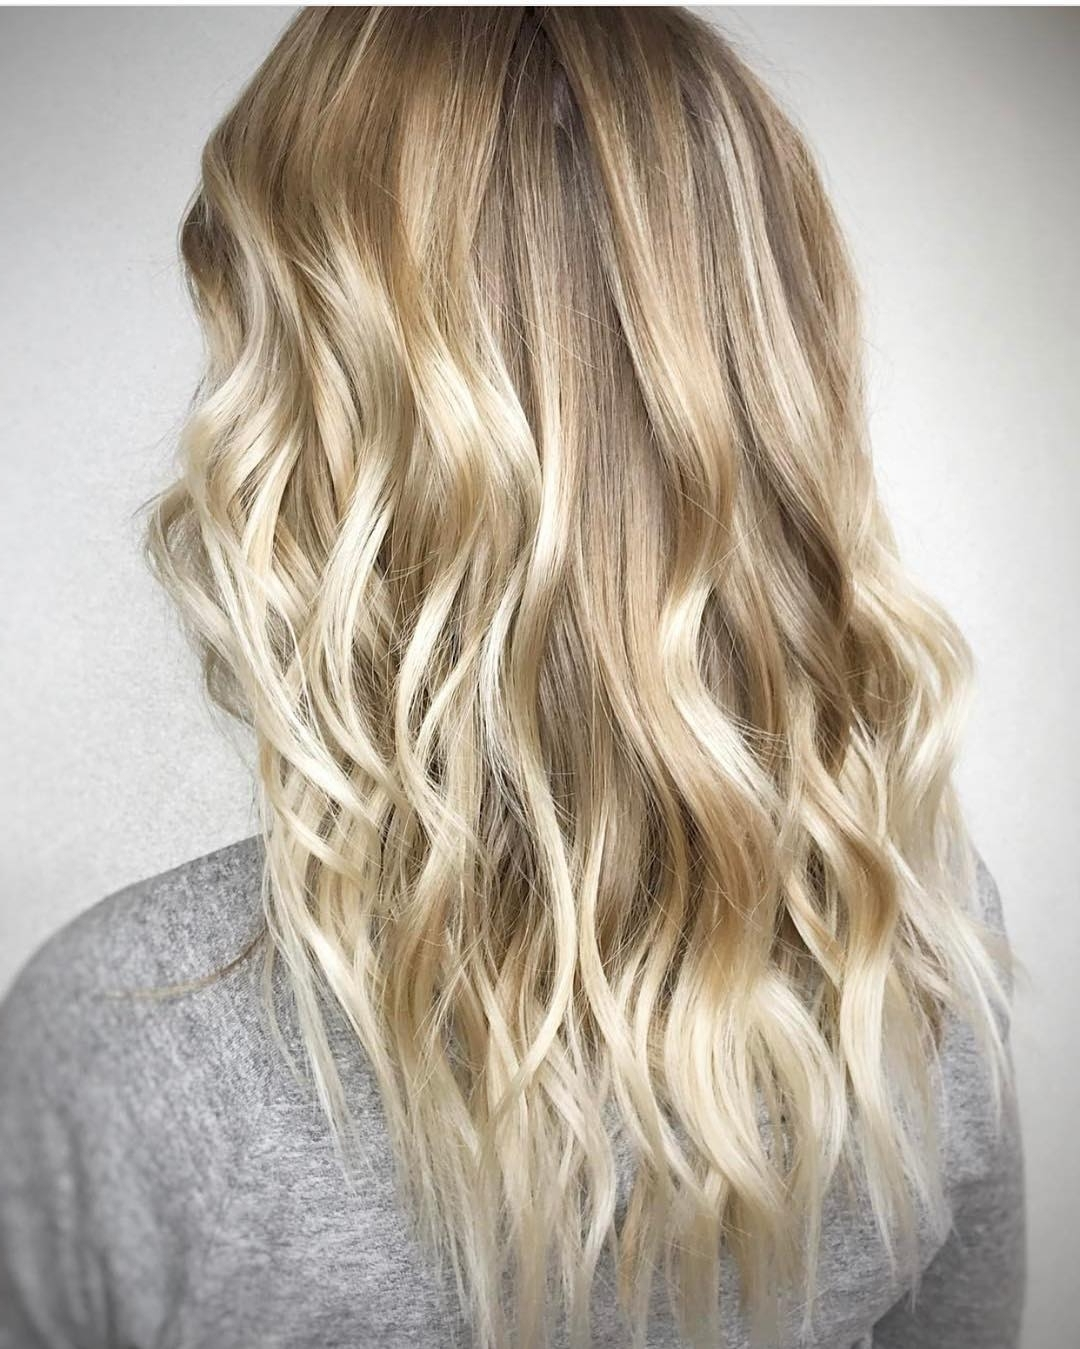 Favorite Layered Bright And Beautiful Locks Blonde Hairstyles Regarding 20 Beautiful Blonde Balayage Hair Color Ideas – Trendy Hair Color (View 17 of 20)